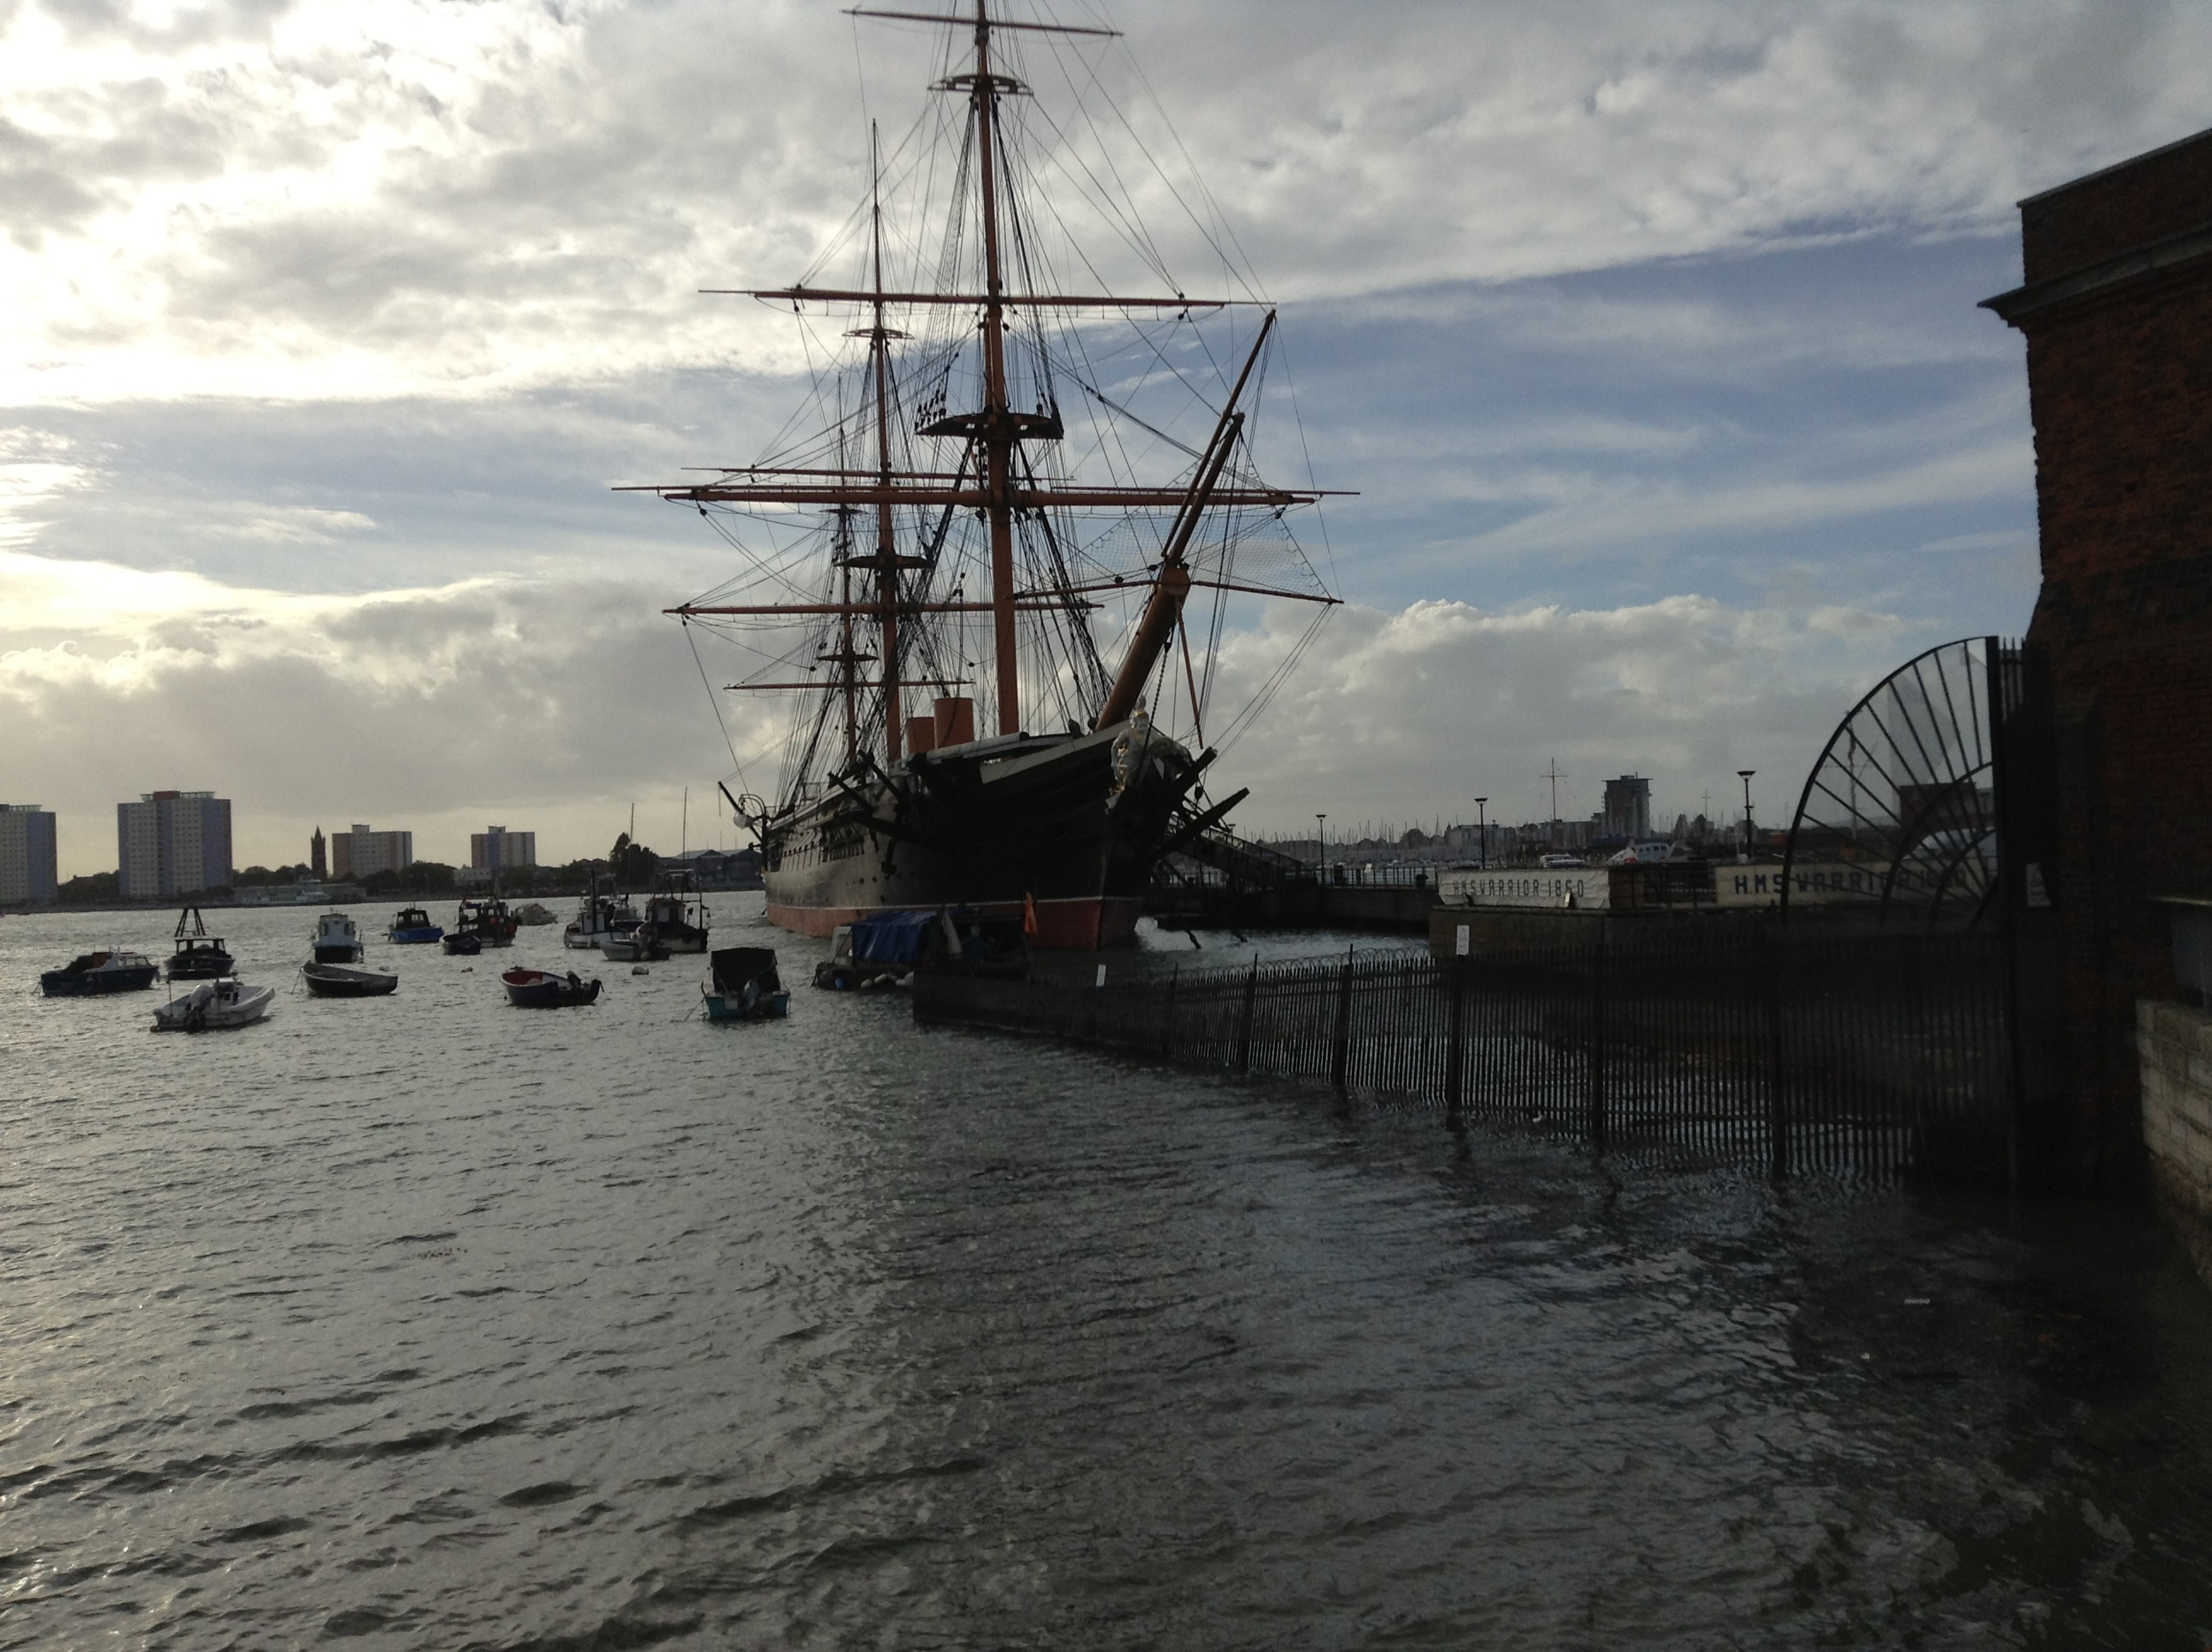 Portsmouth Historic Dockyard and HMS Warrior (1860 warship)